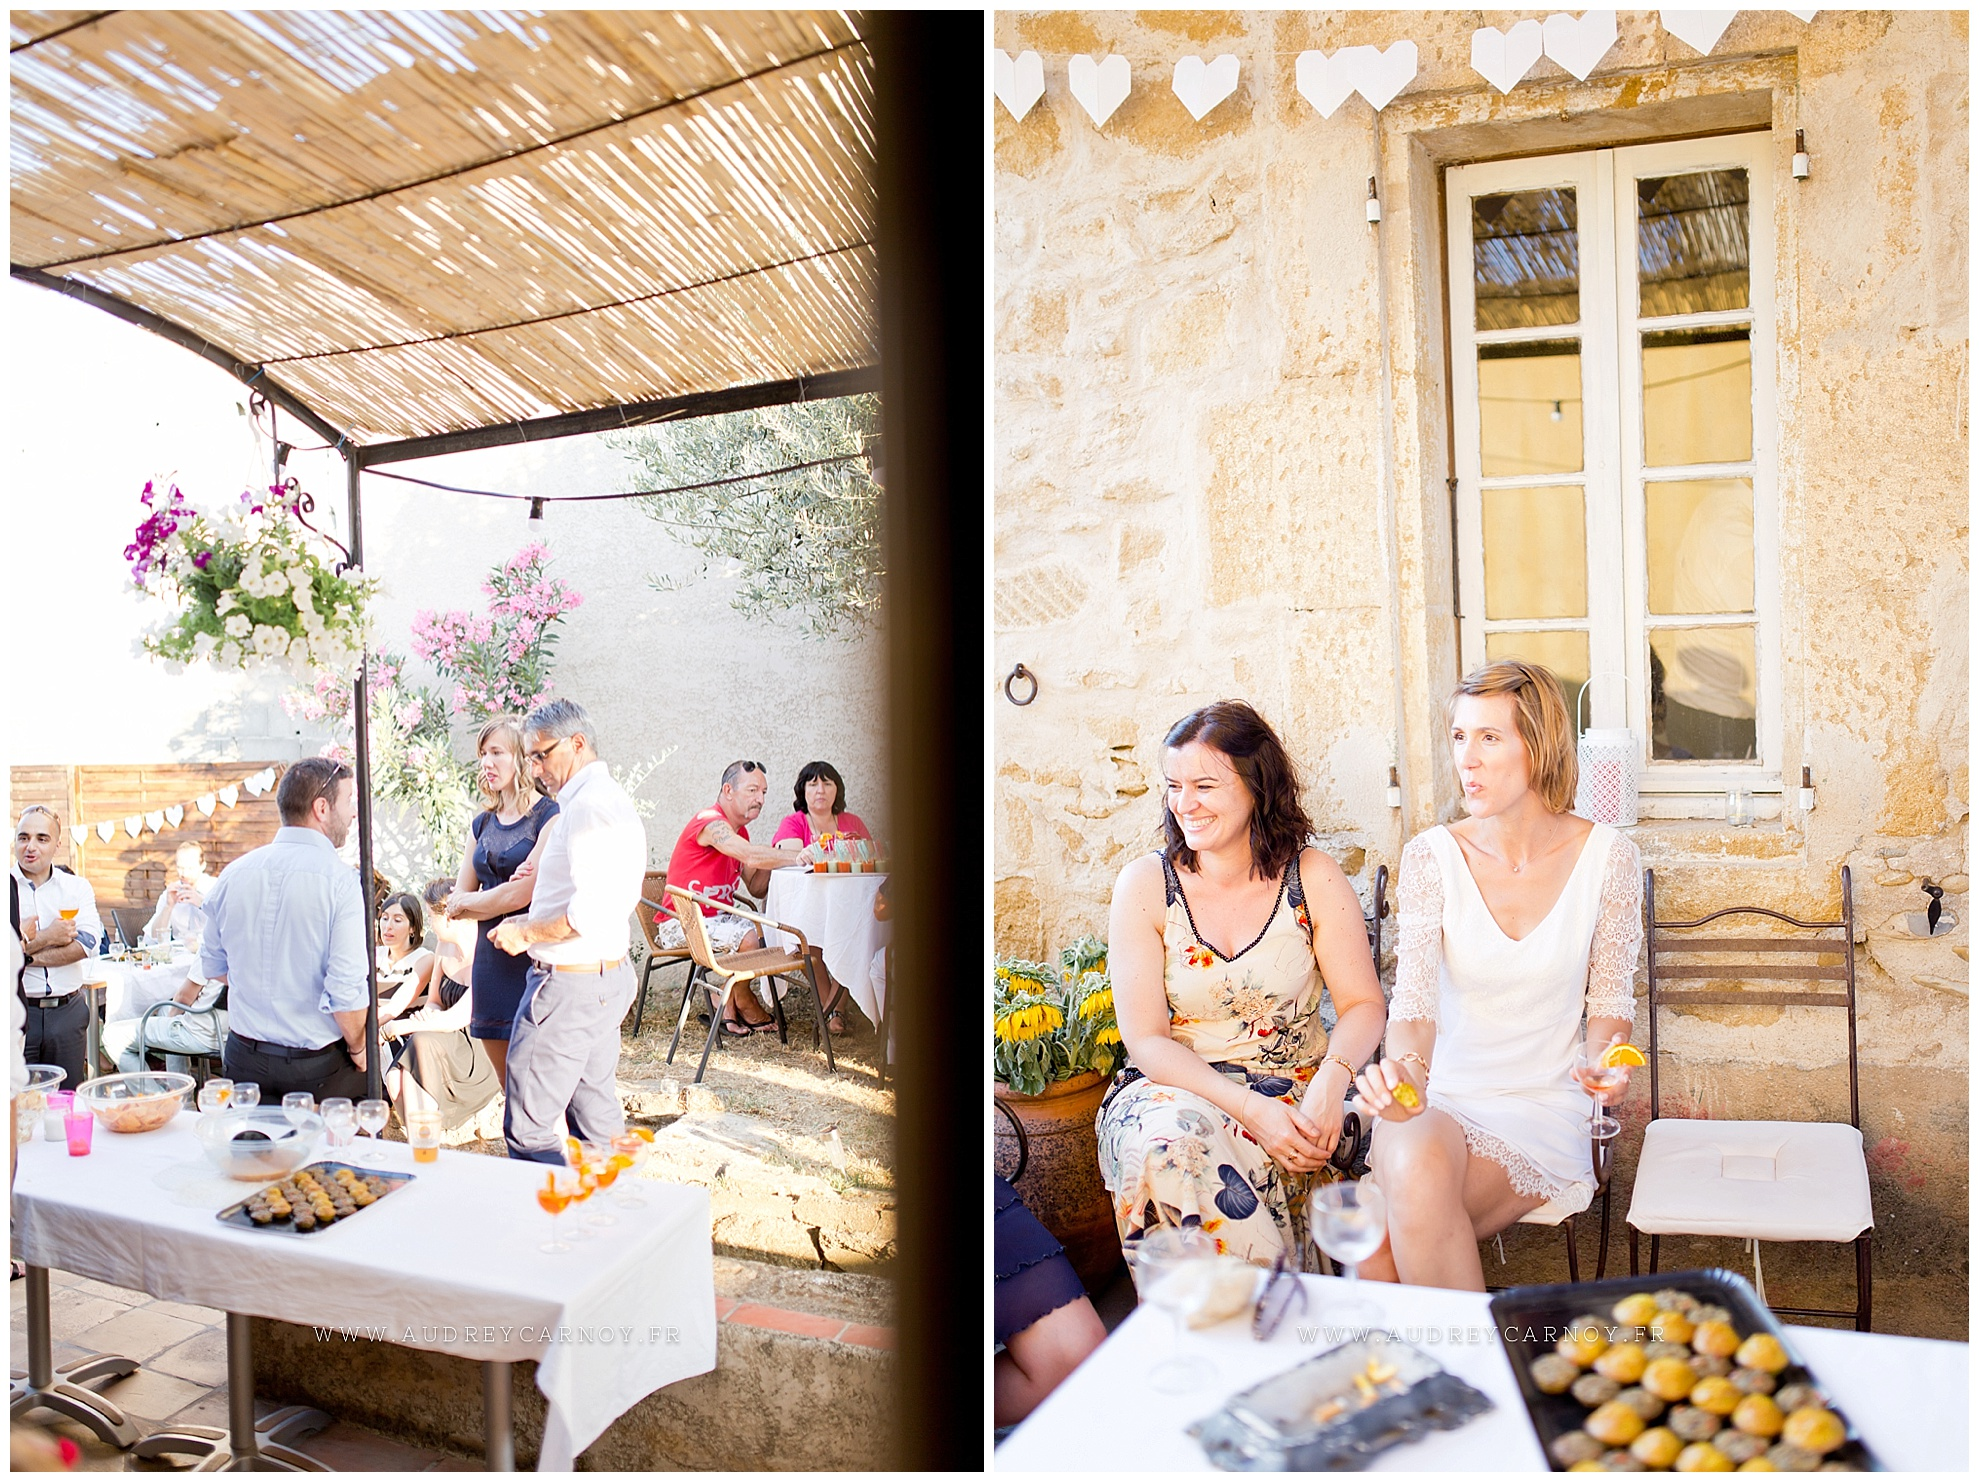 Mariage Pertuis | Laurence & Anthony 40